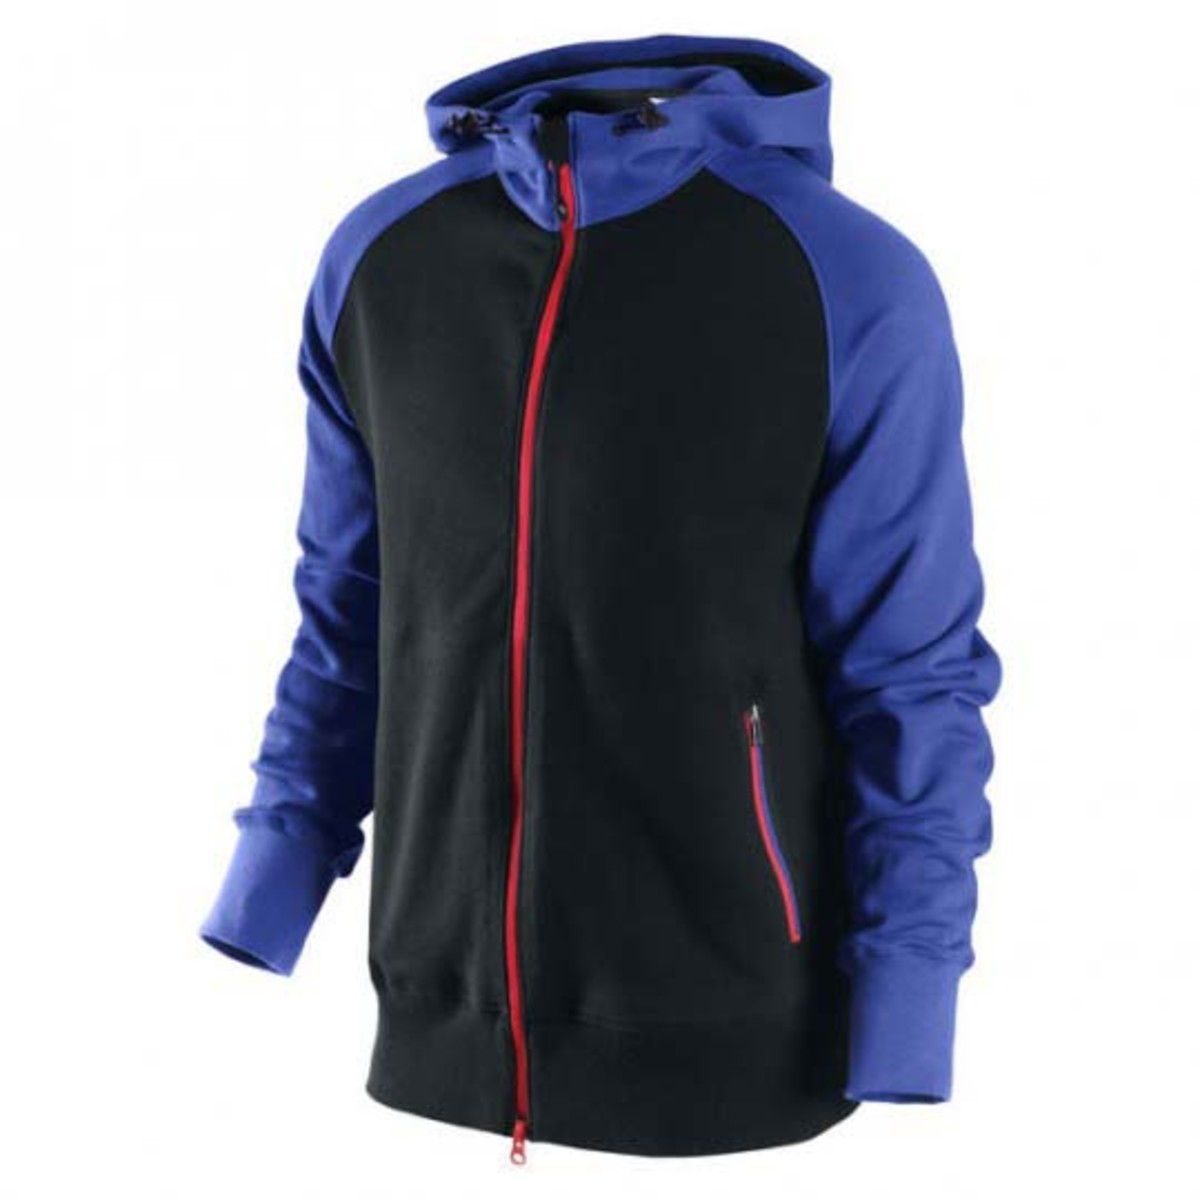 nike-sportswear-fall-2009-collection-02